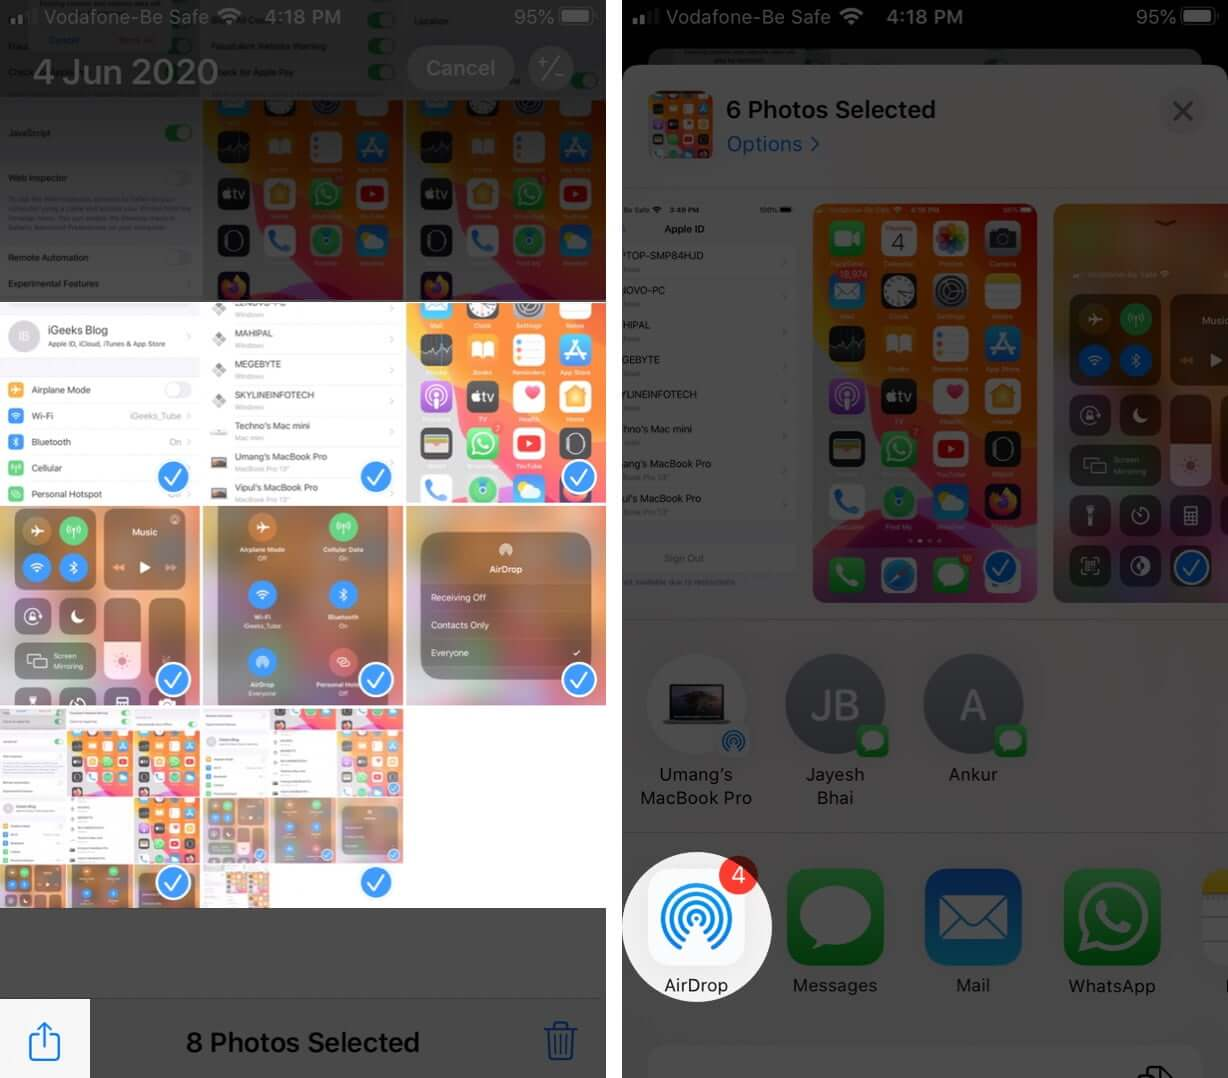 Select Images Tap on Share and Then Tap on AirDrop